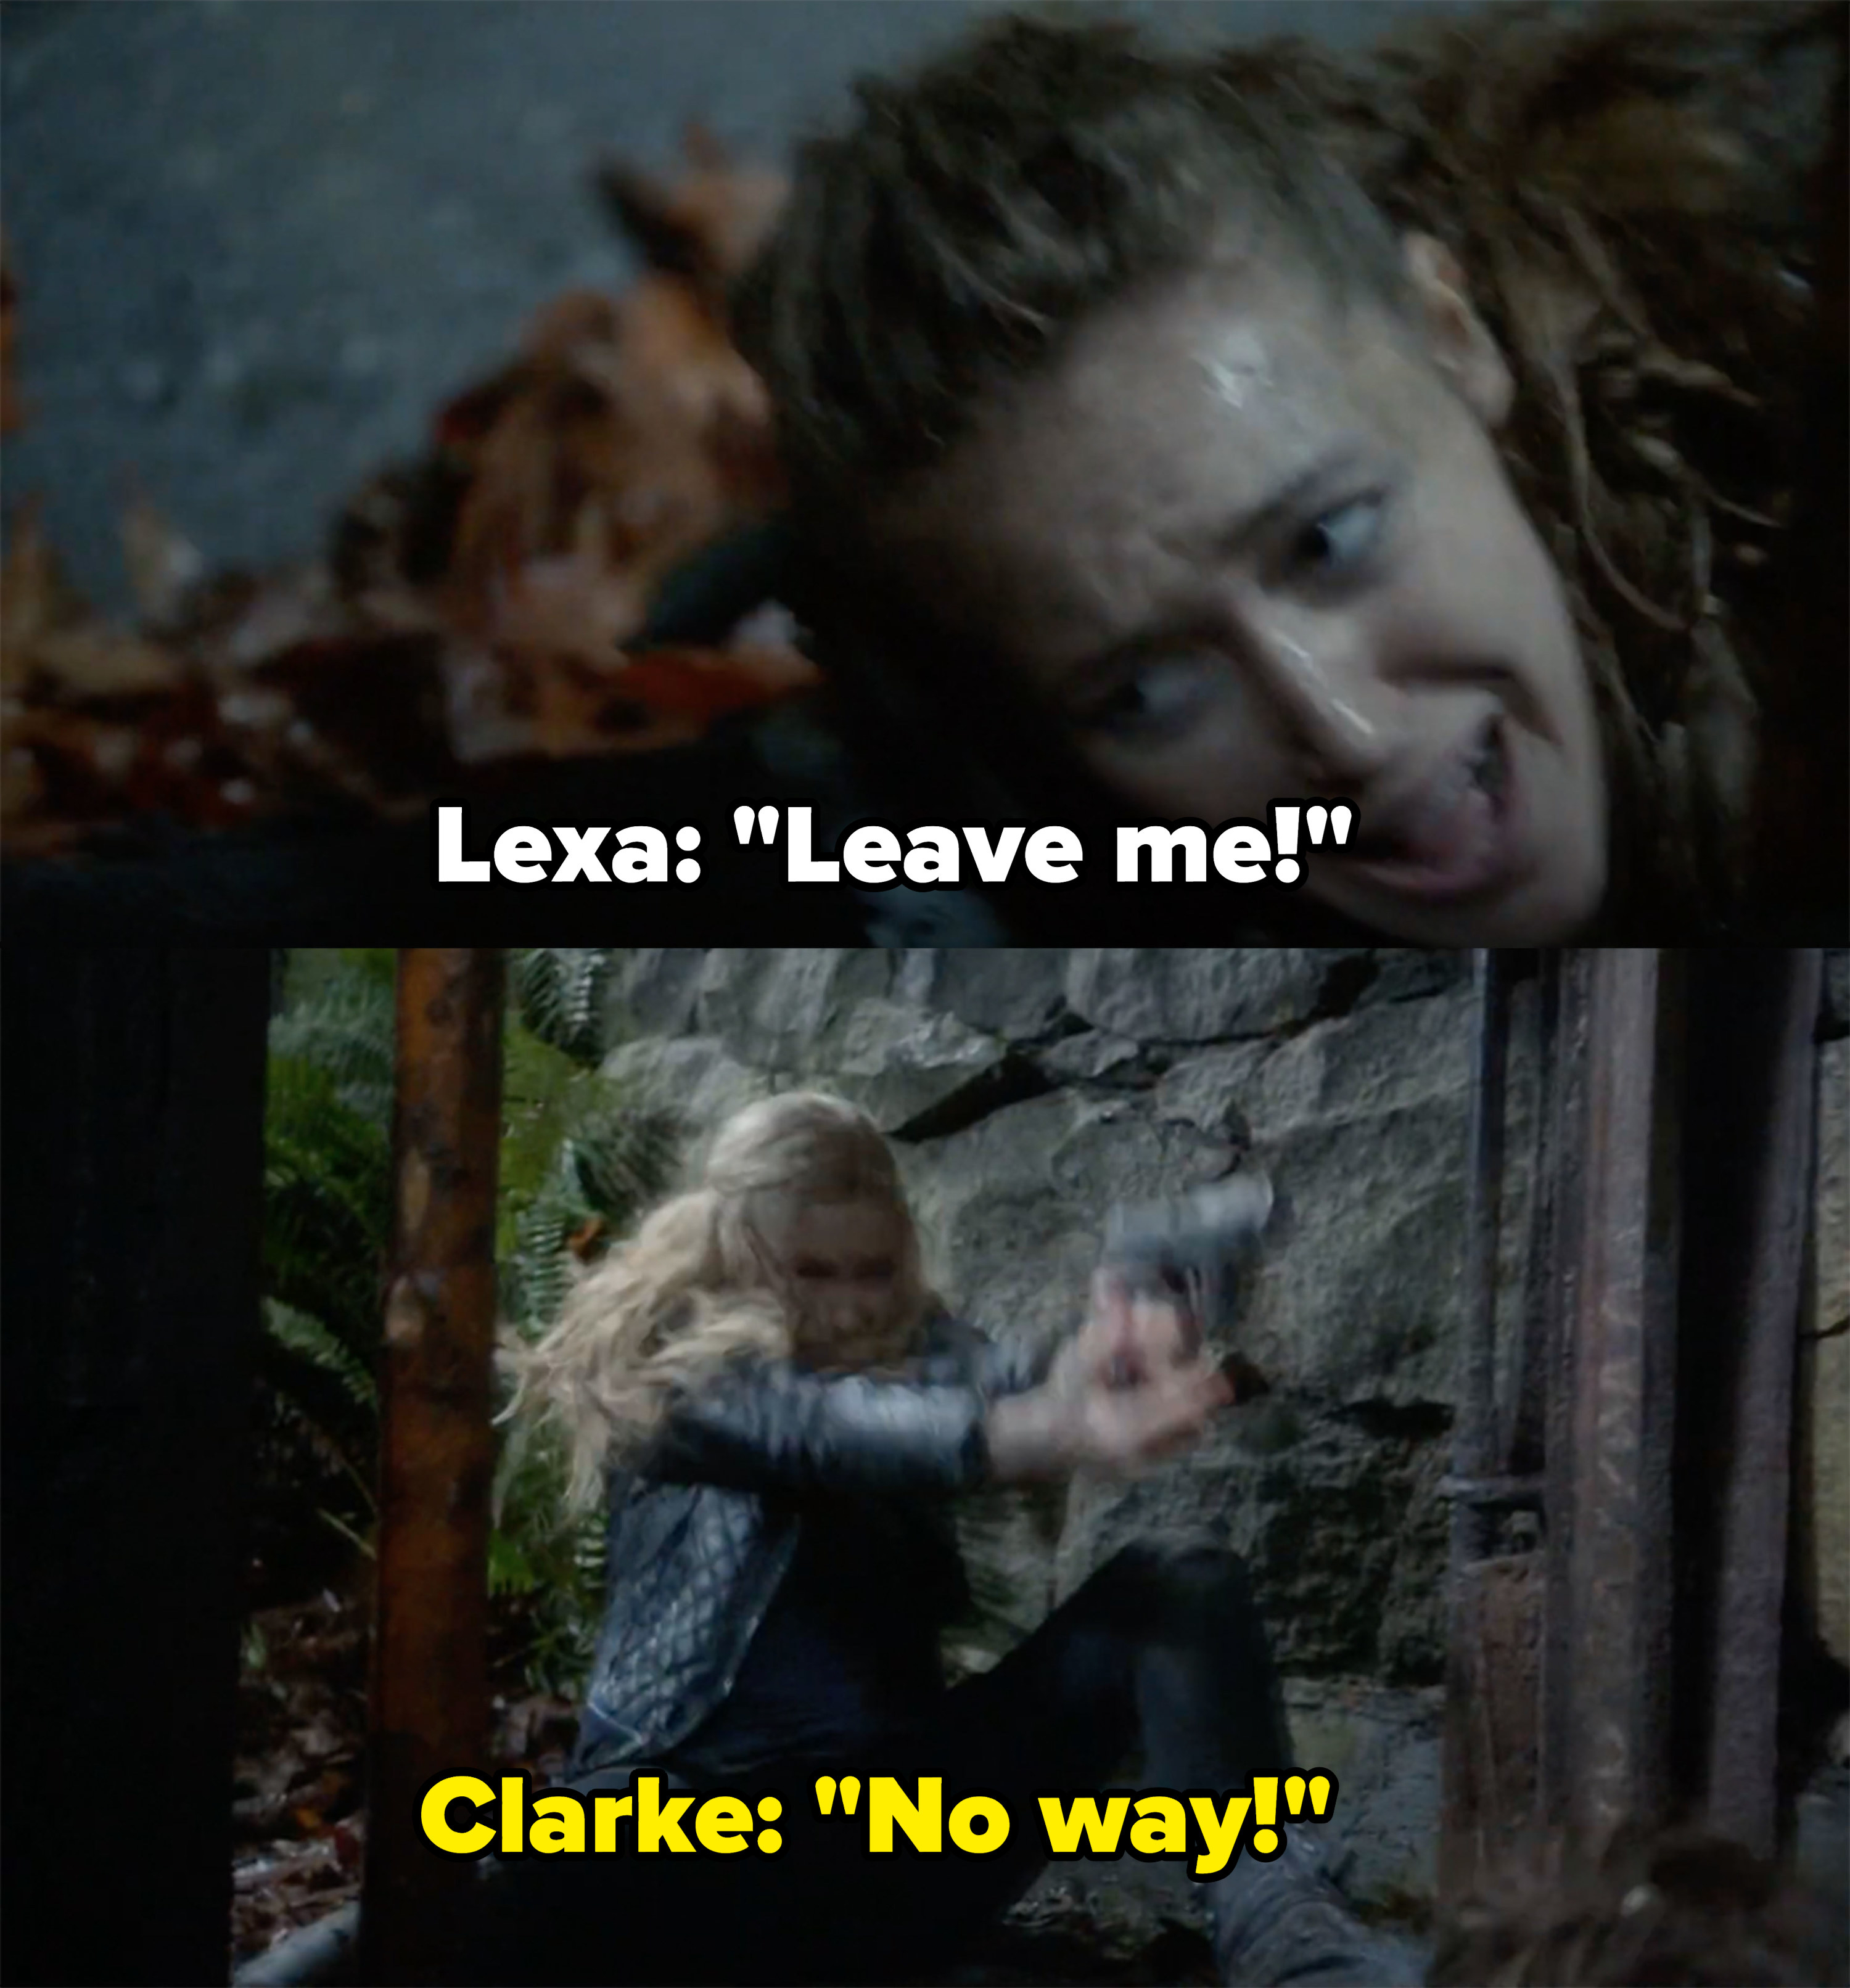 Lexa says to leave her to die, Clarke says no way